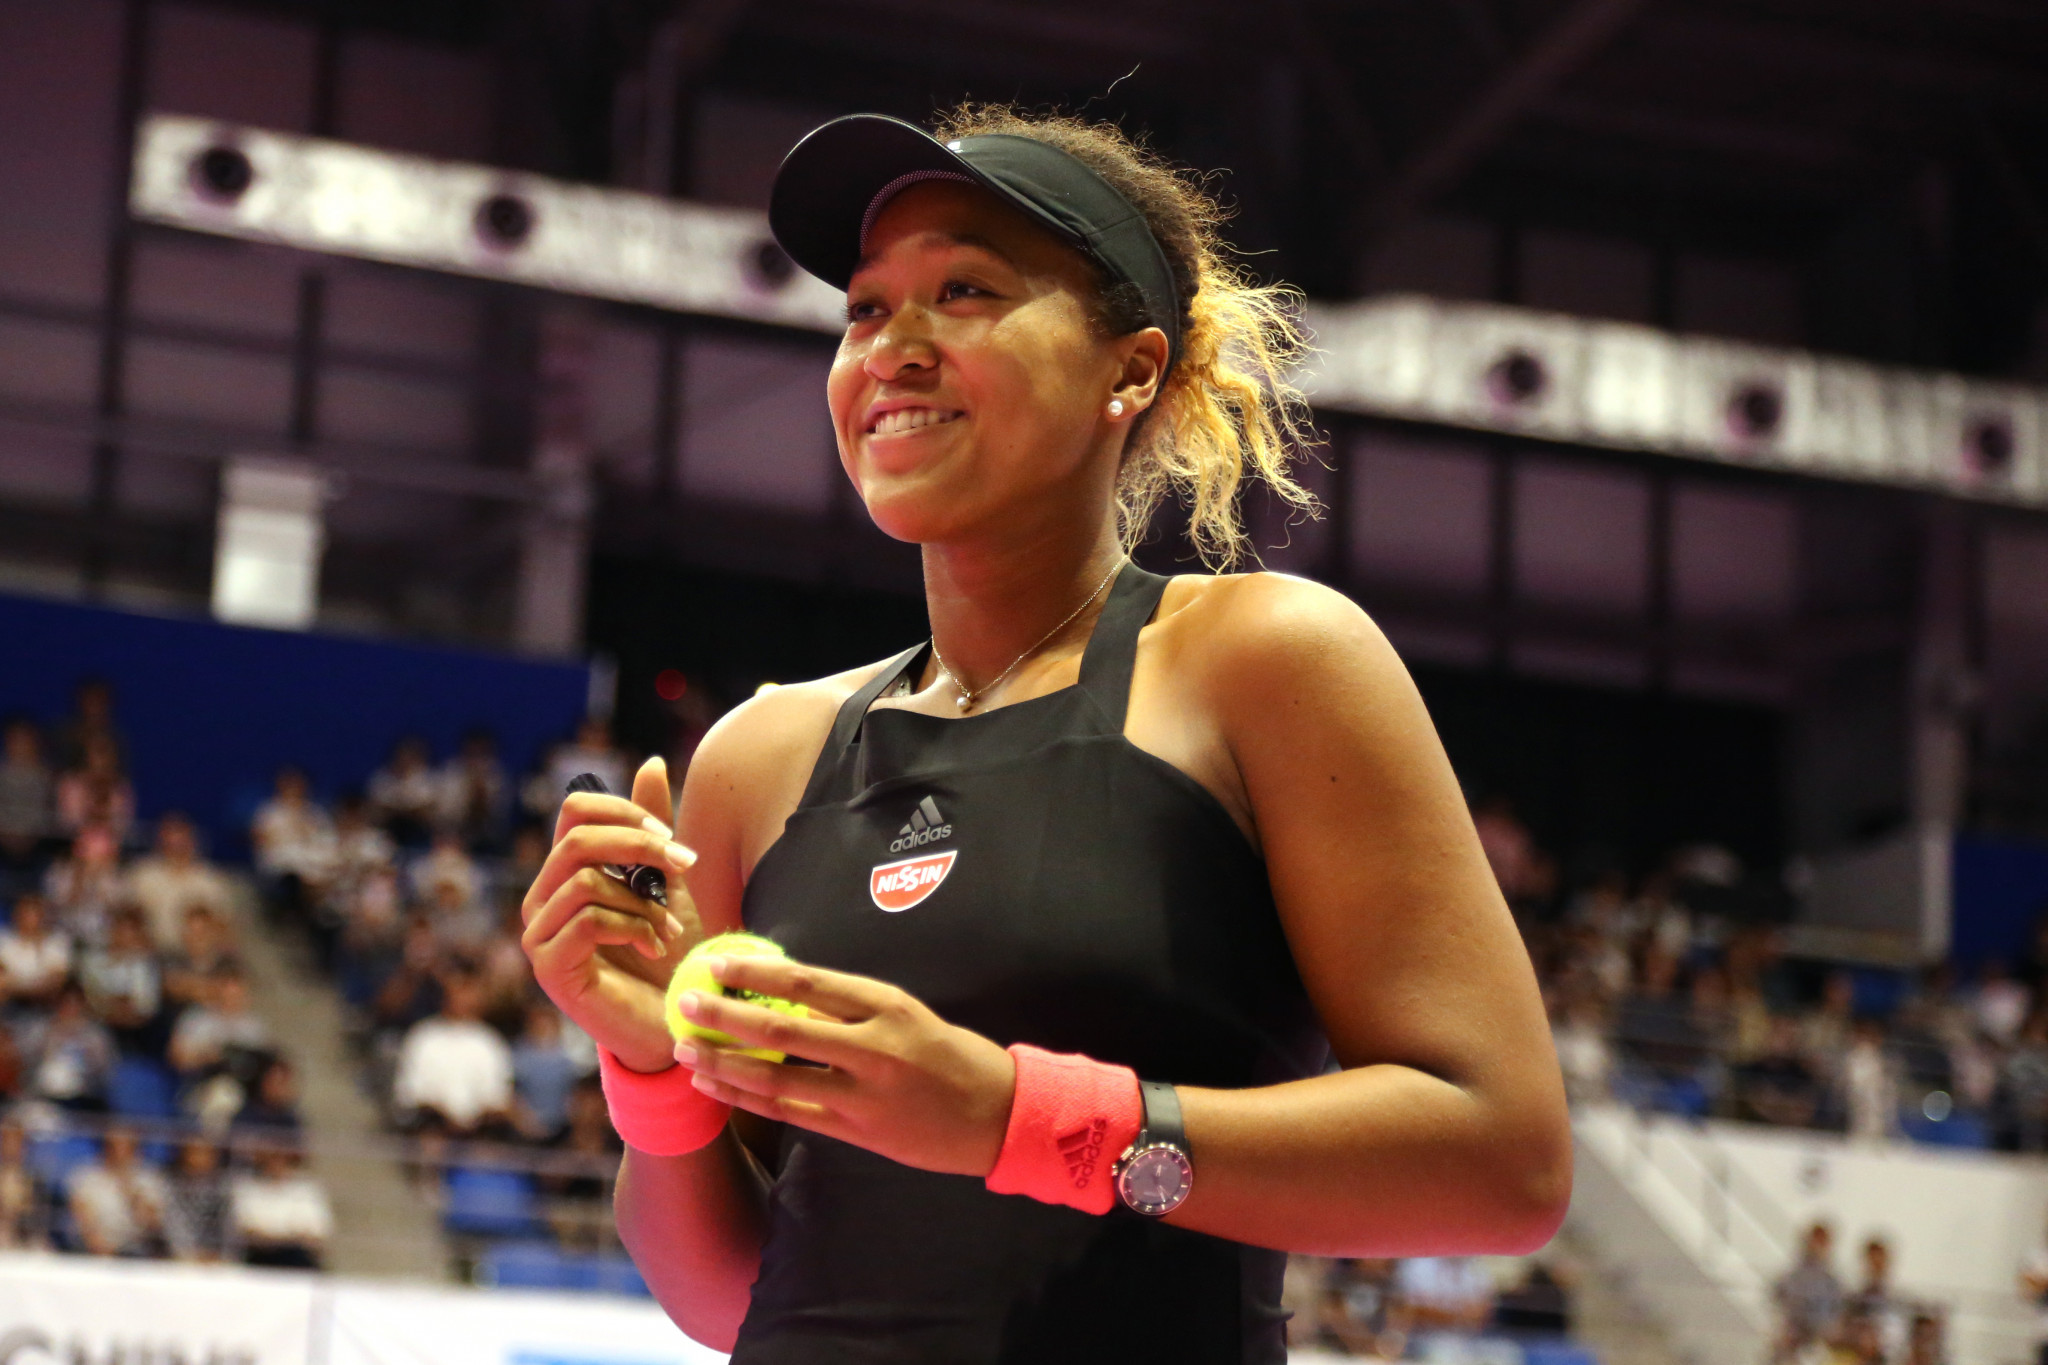 Japan's Naomi Osaka beat the Czech Republic's Dominika Cibulková to progress into the quarter-finals of the Pan Pacific Open in Tokyo ©Getty Images